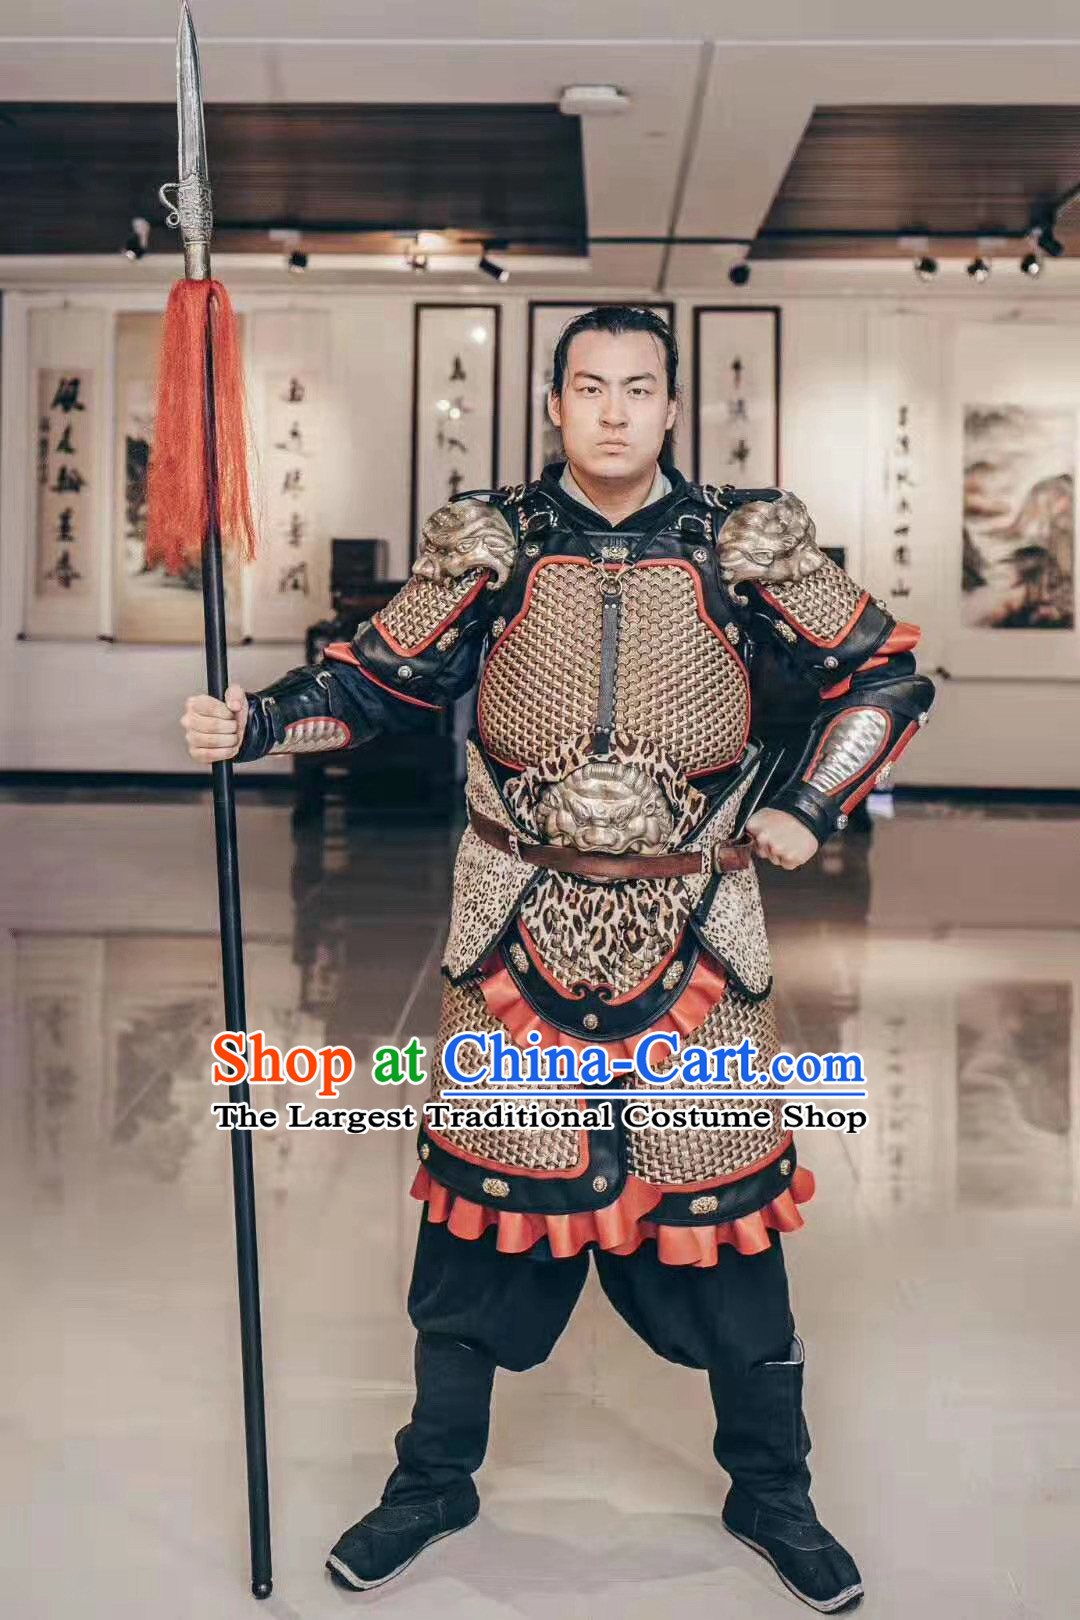 Custom Chinese Ancient Soldier Armor Suits General Apparels and Headwear Cosplay Drama Costumes Complete Set